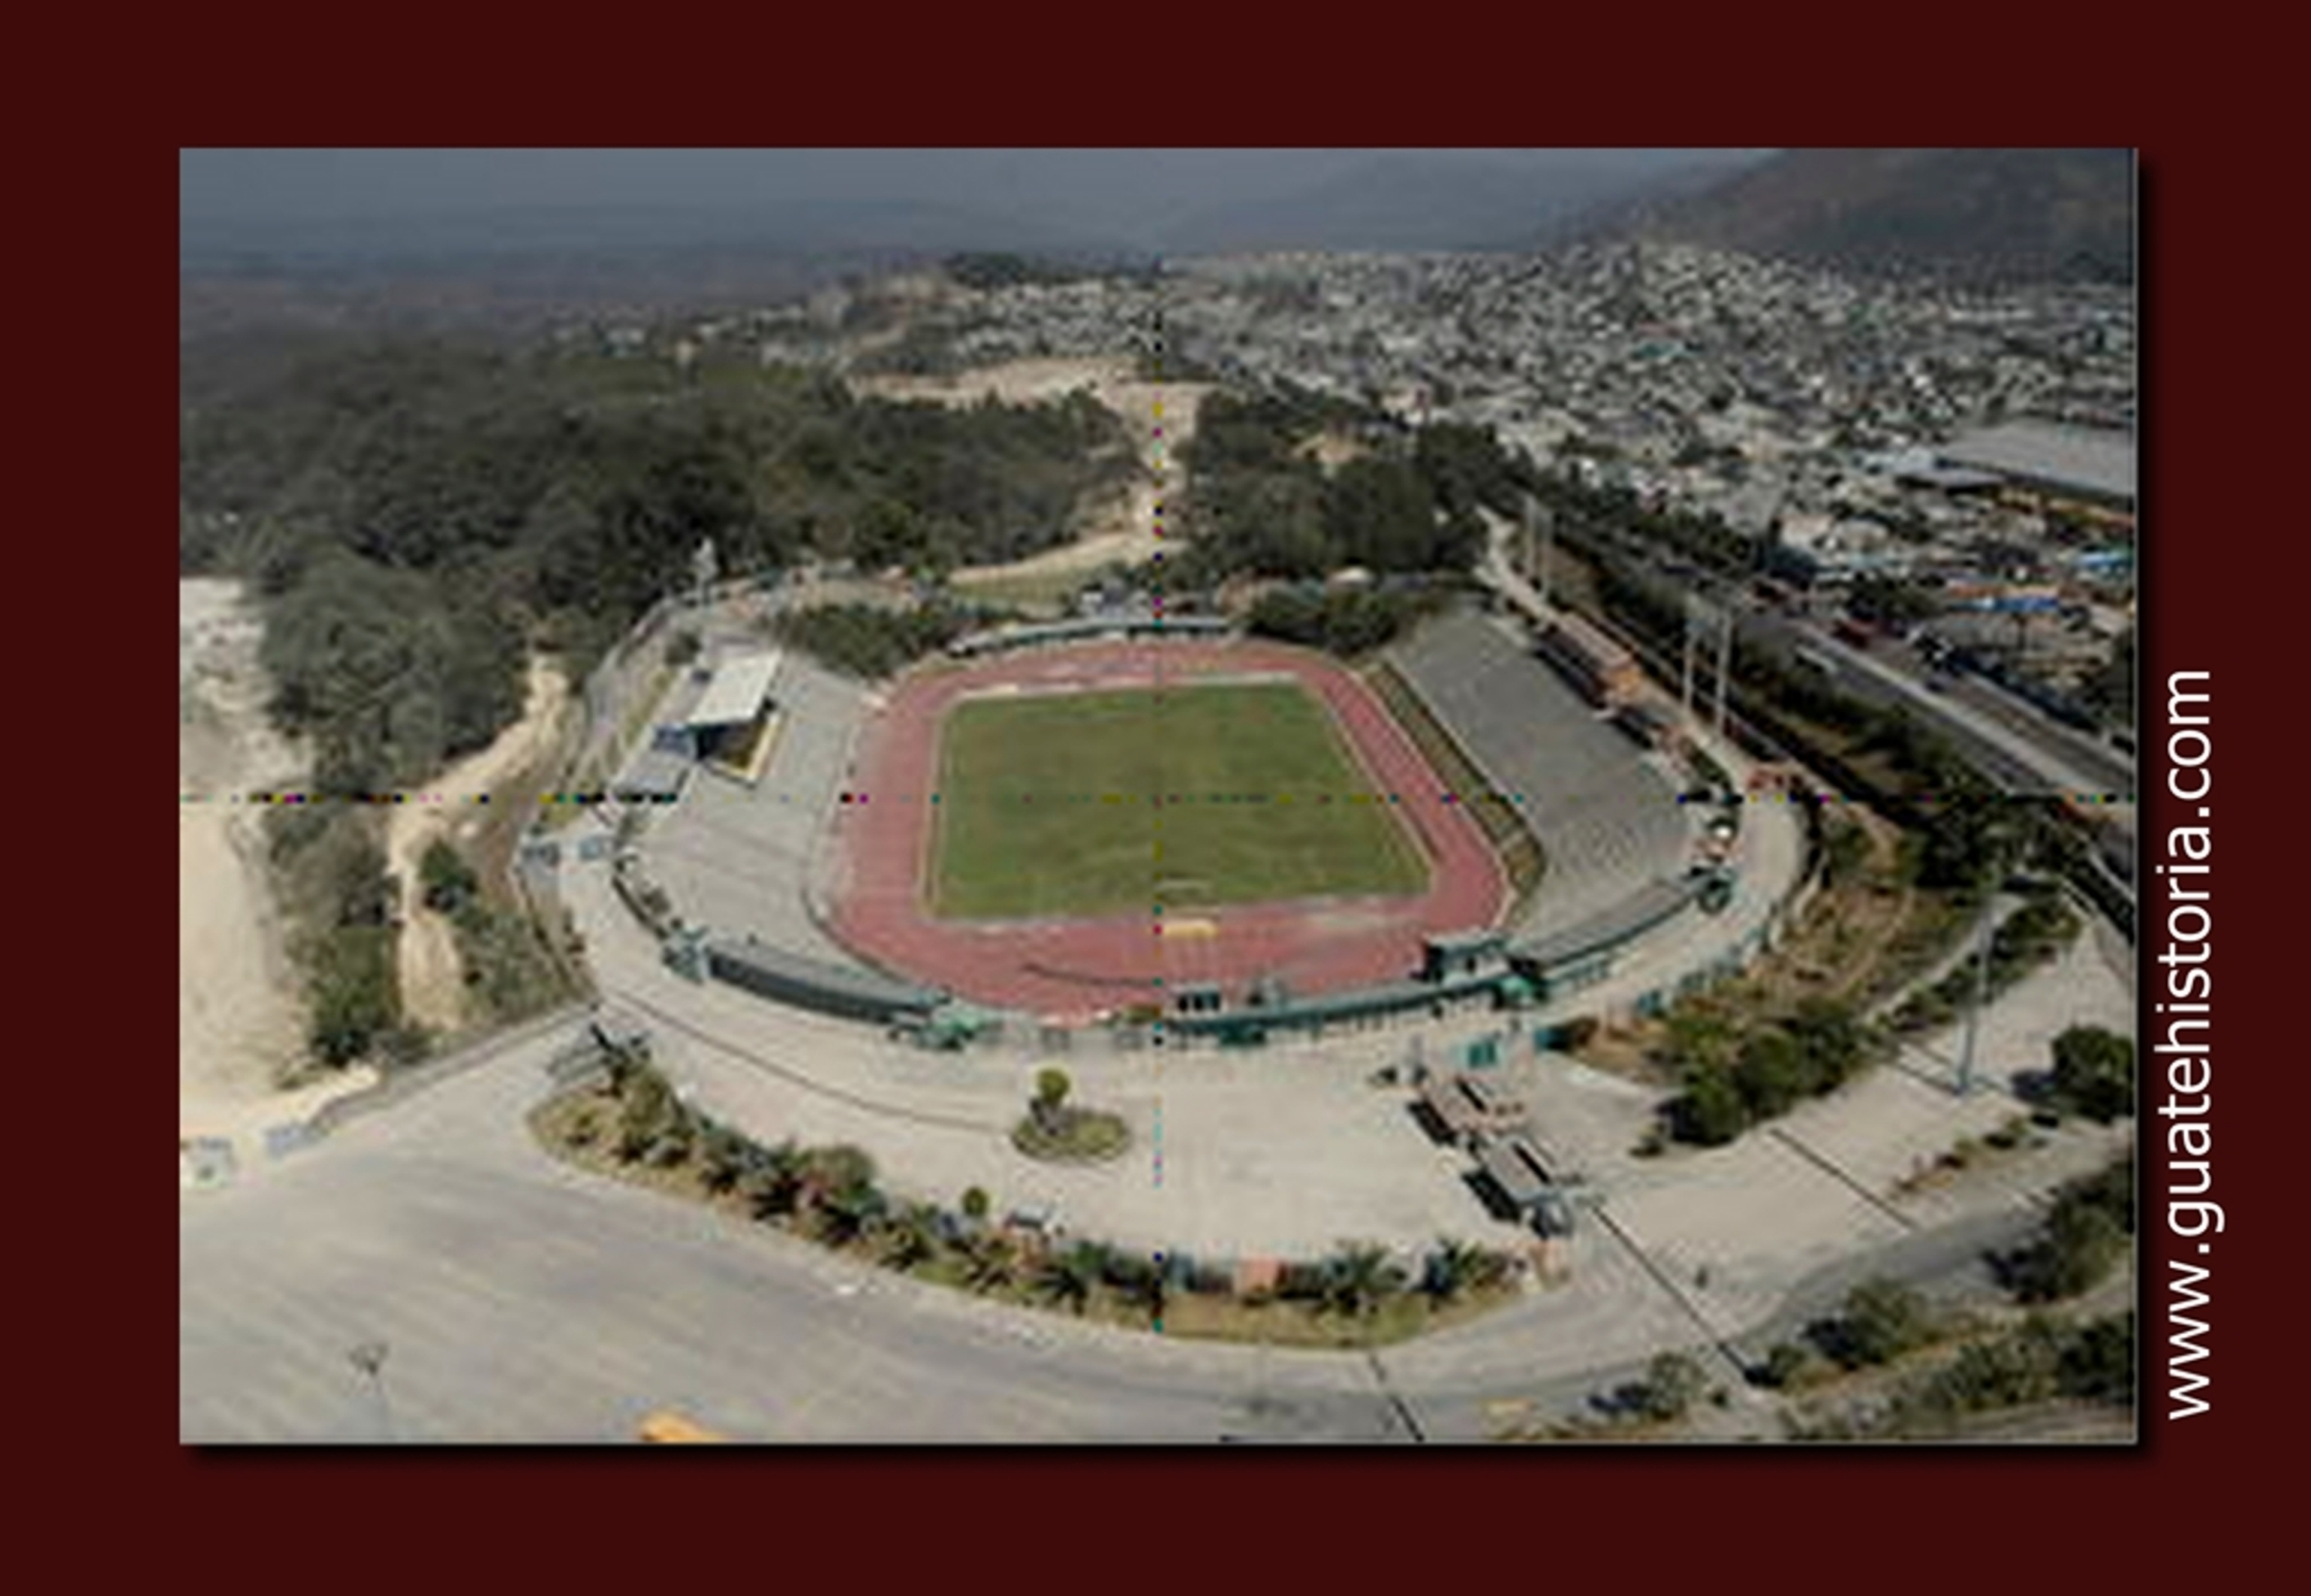 Estadio Cementos Progreso